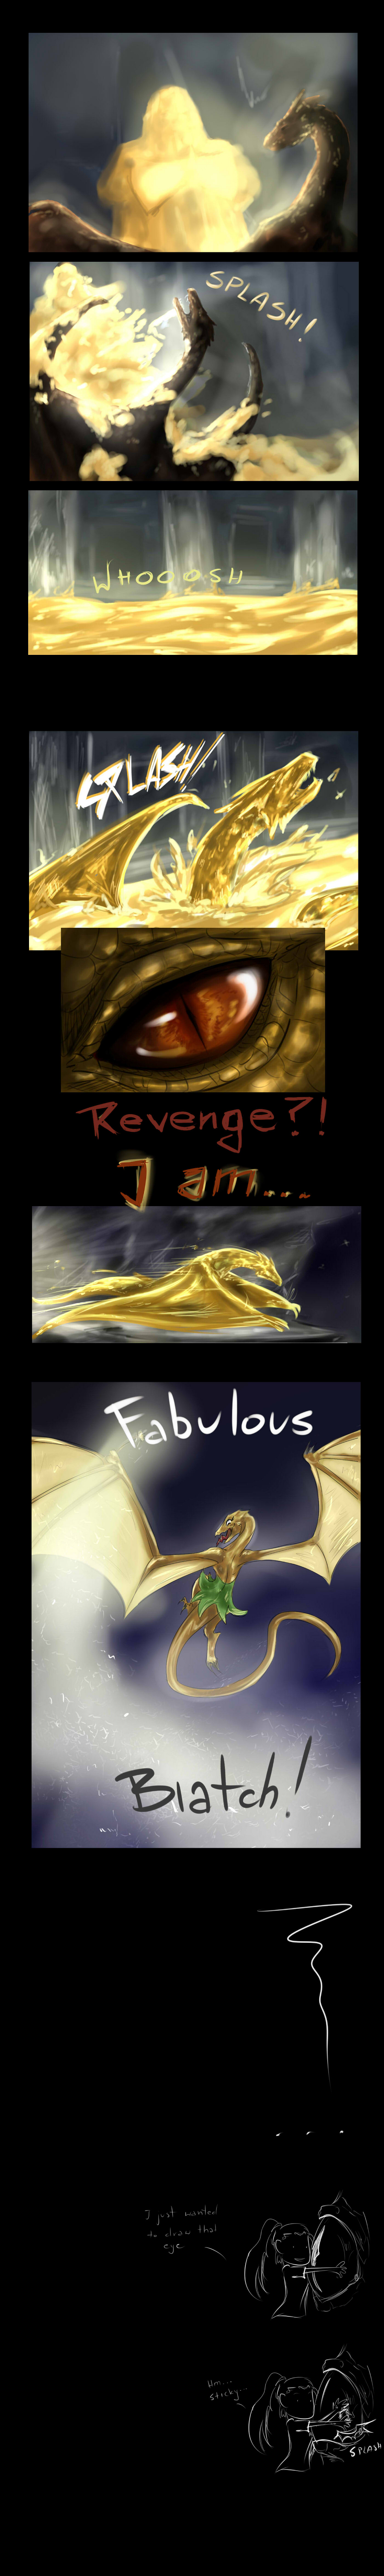 Smaug the Fabulous by Antarija